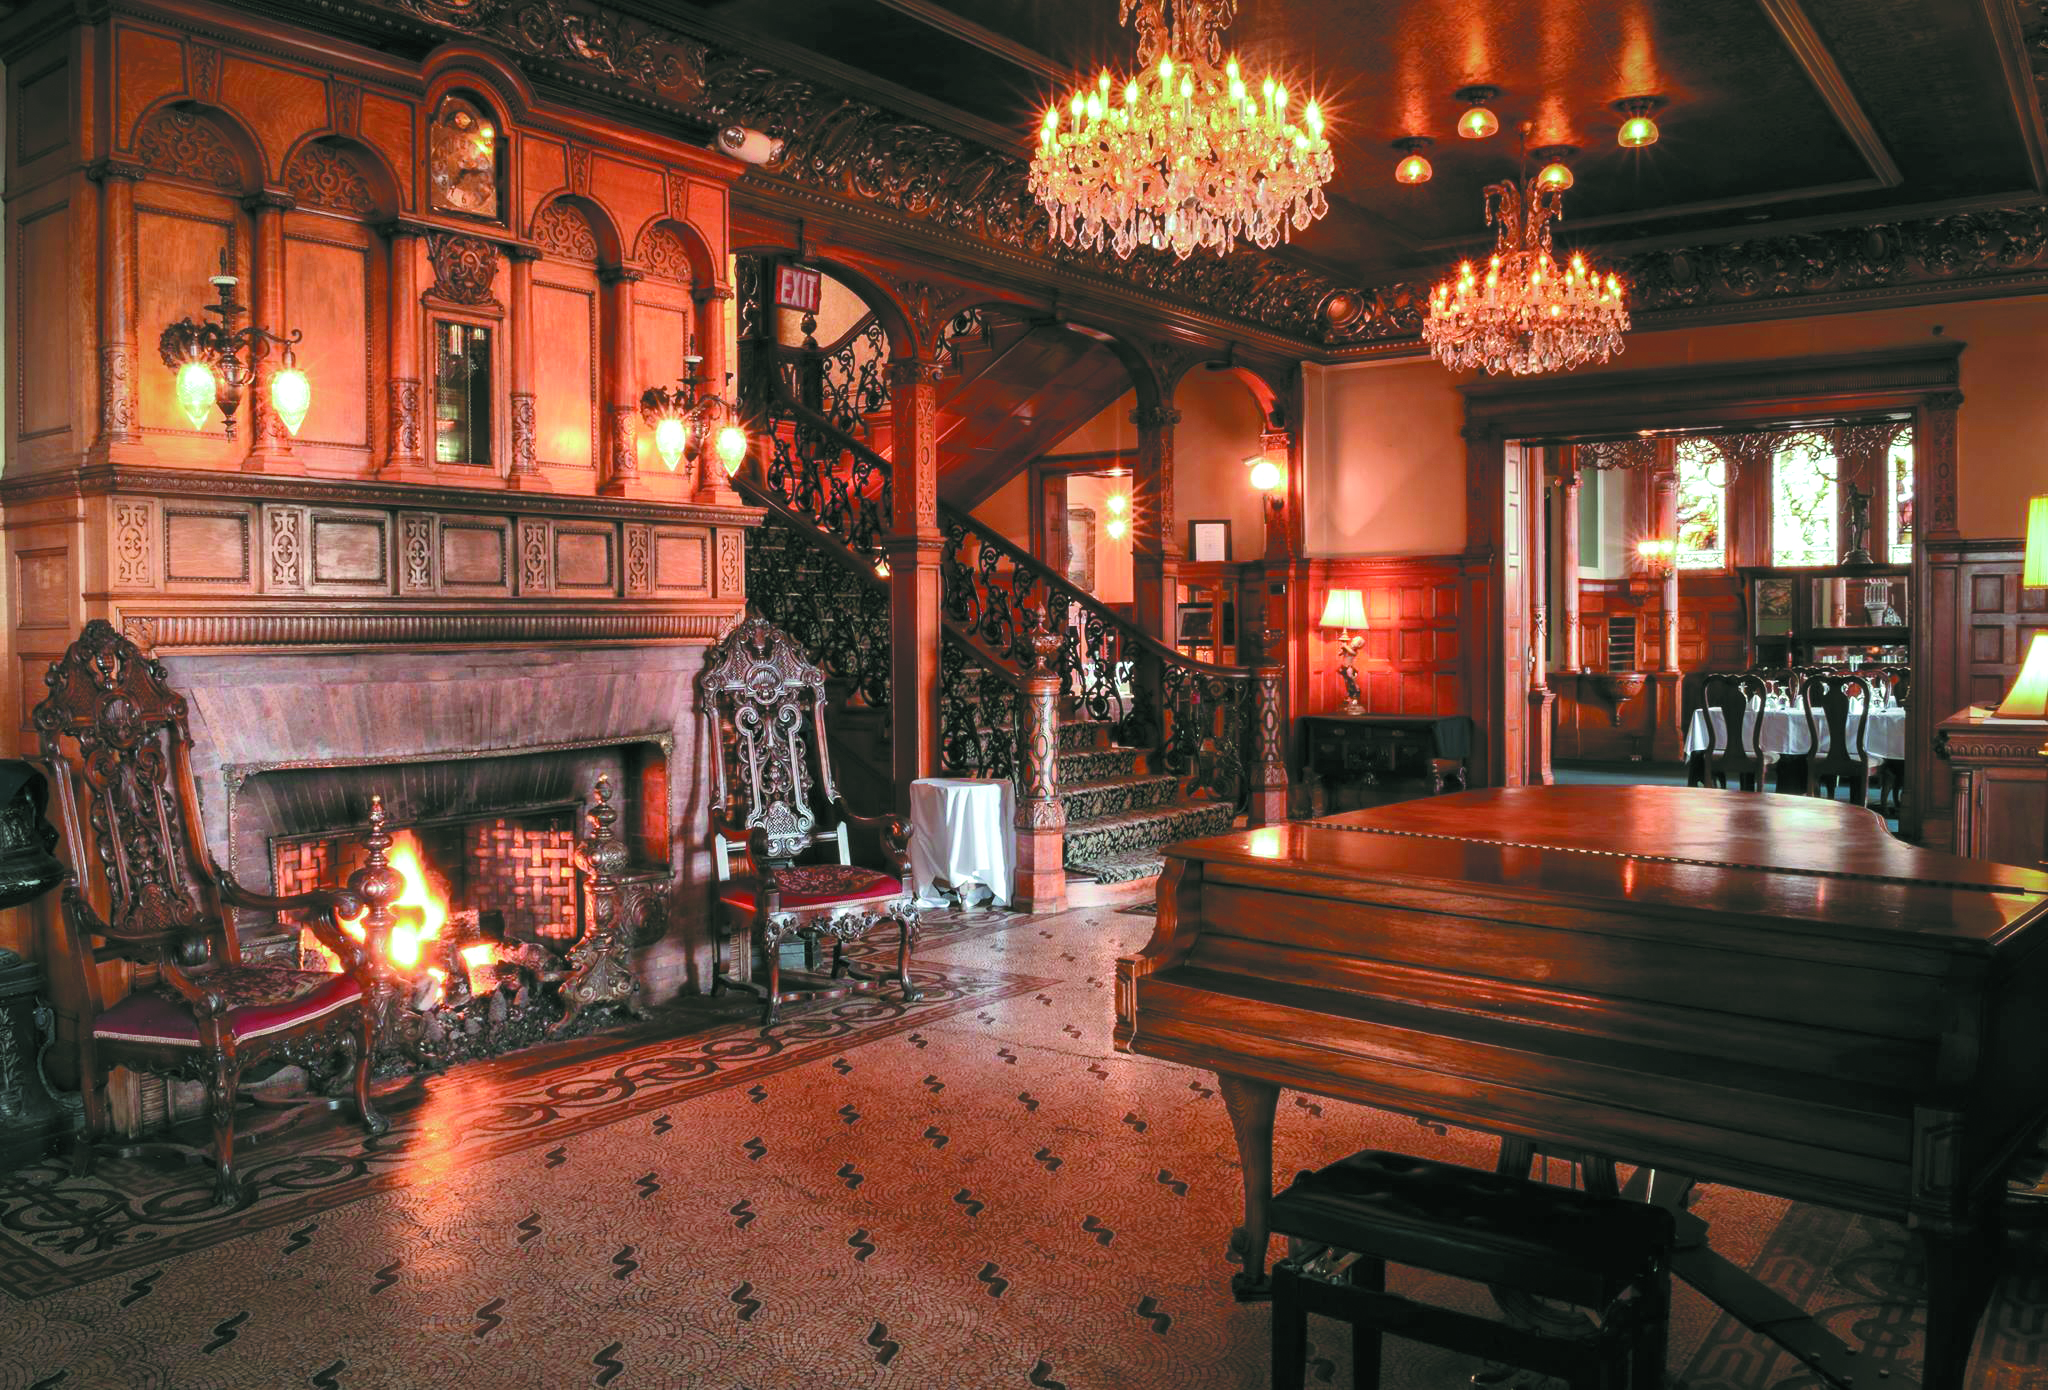 the inside of The Whitney showing a grand piano and fireplace with chandeliers